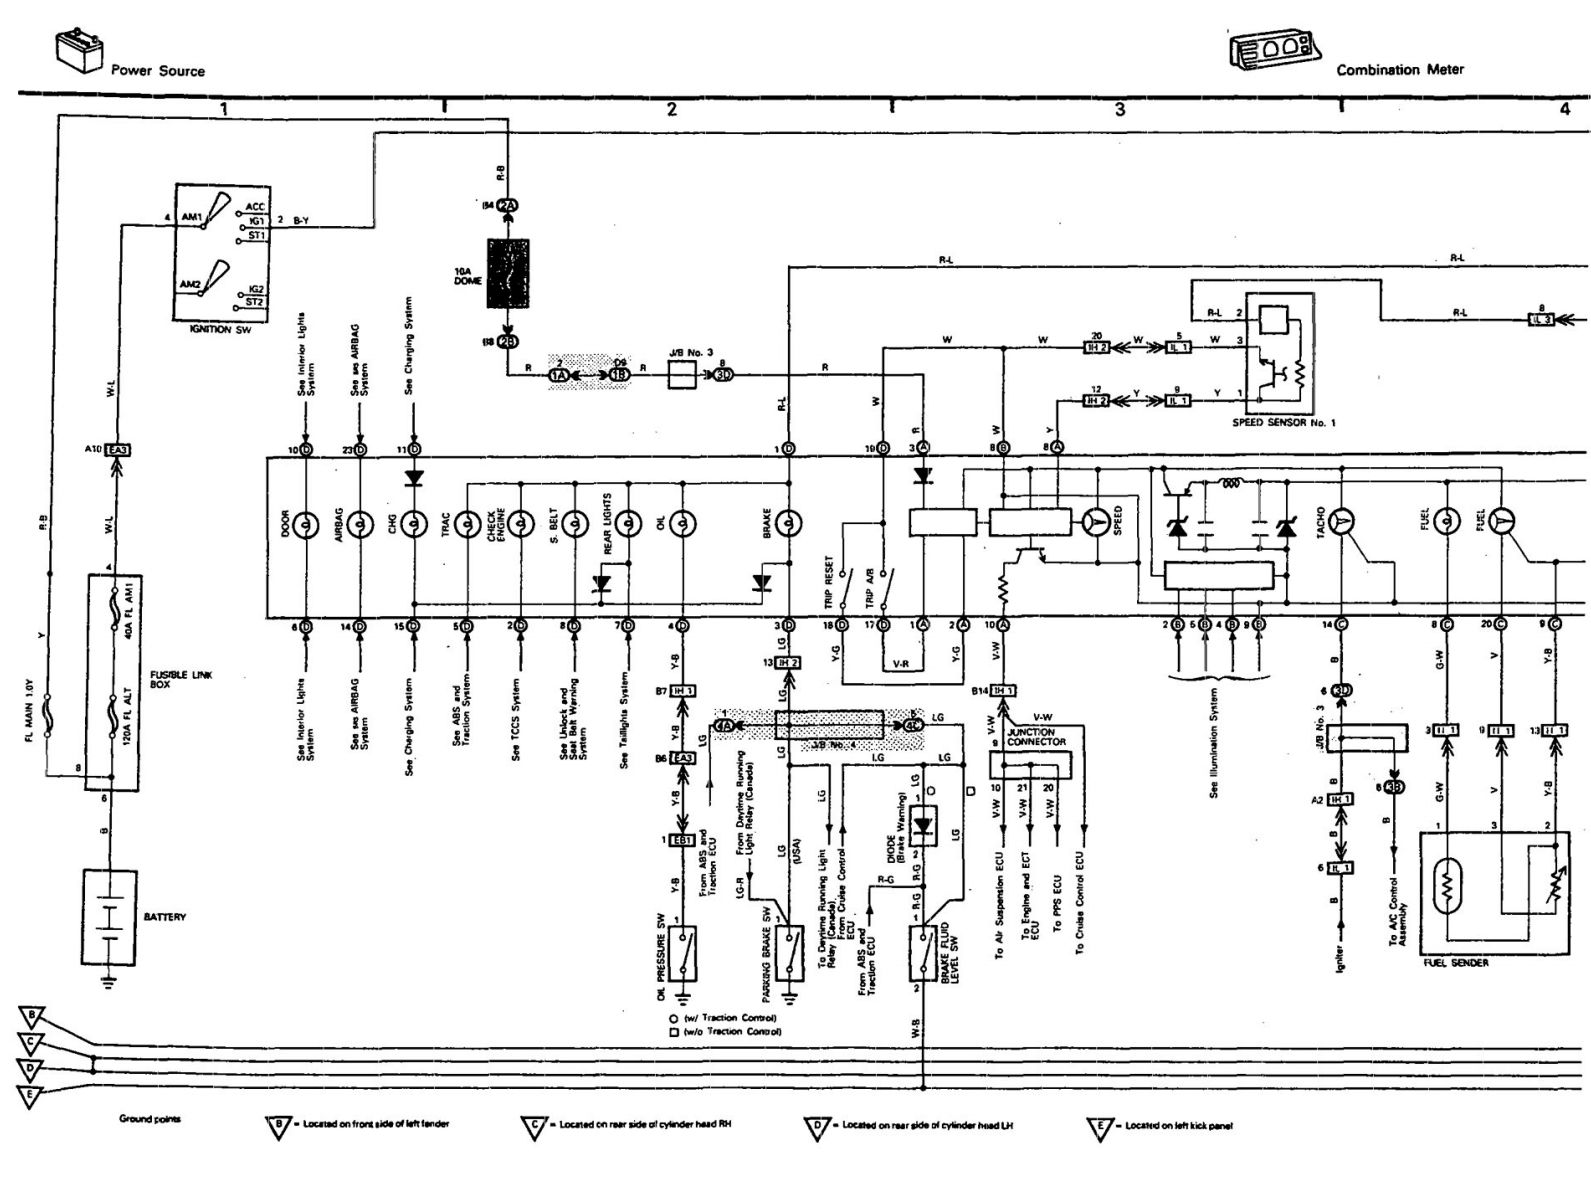 80 91_instrument_856d2d2151fa8541dc95b84608d7ff2a2006be42 wiring diagram for instrument cluster for 91 ls400 clublexus  at arjmand.co